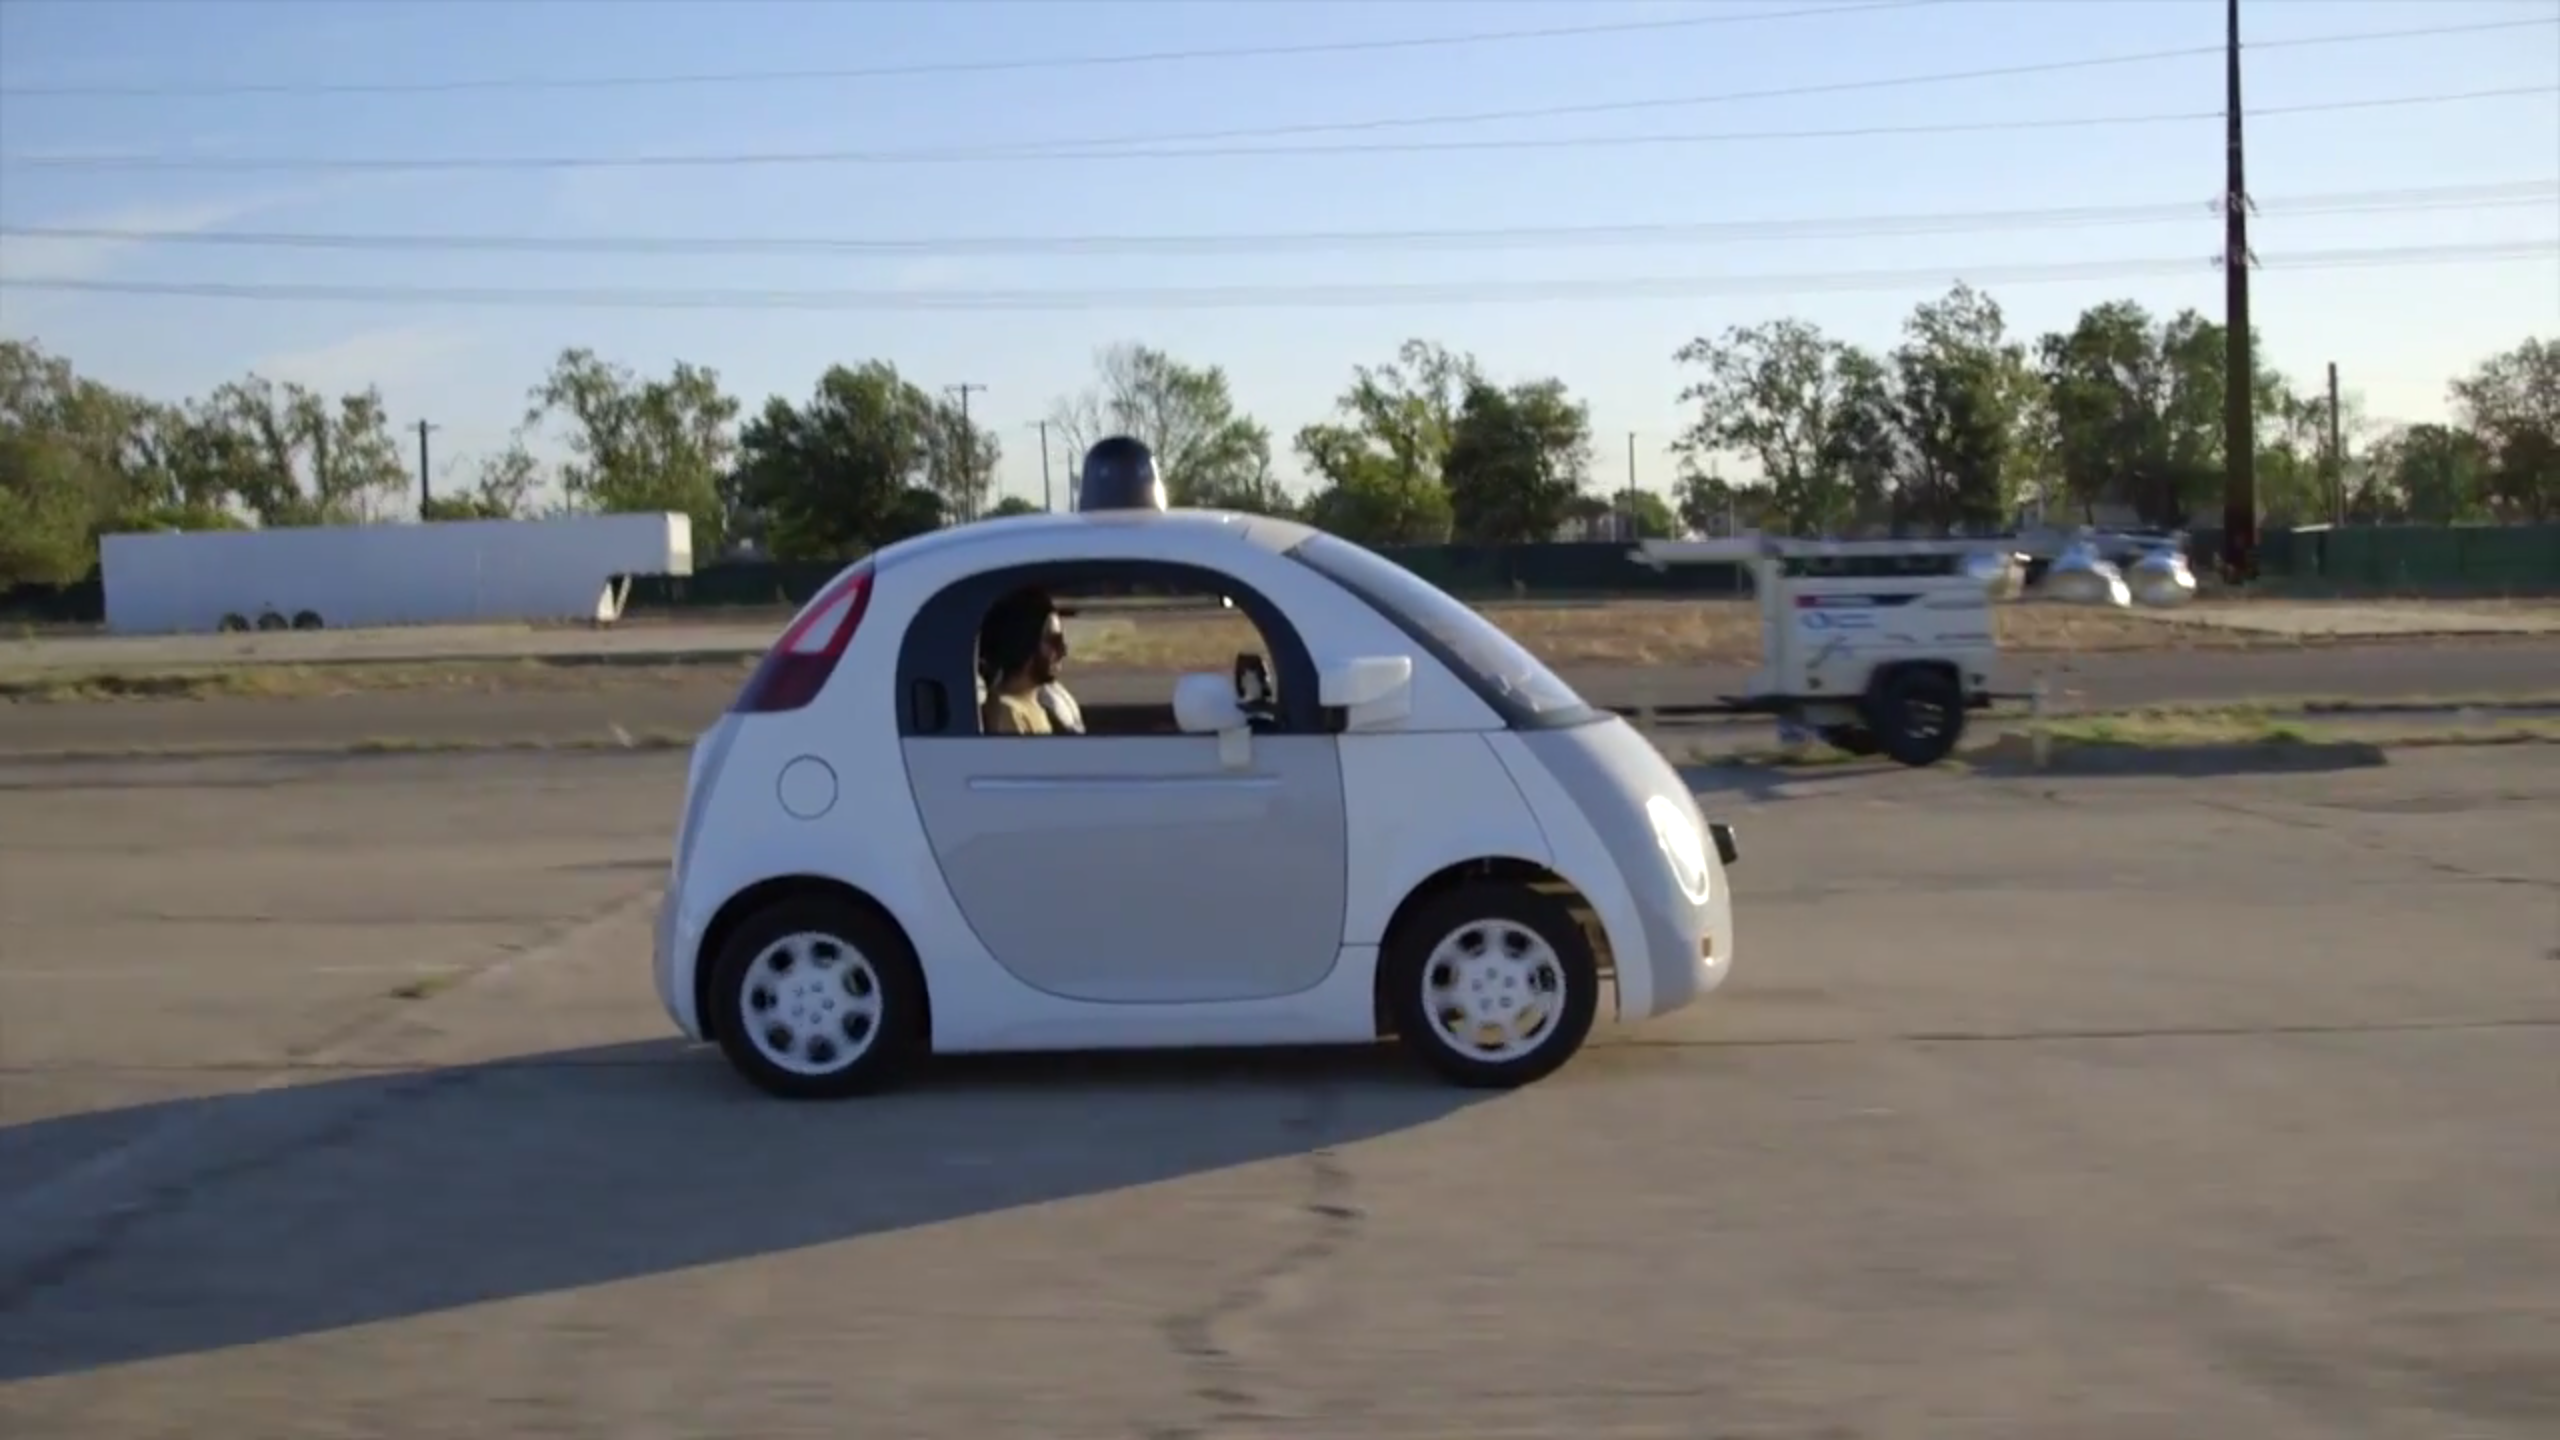 Google's Self-Driving Project Takes the Next Step